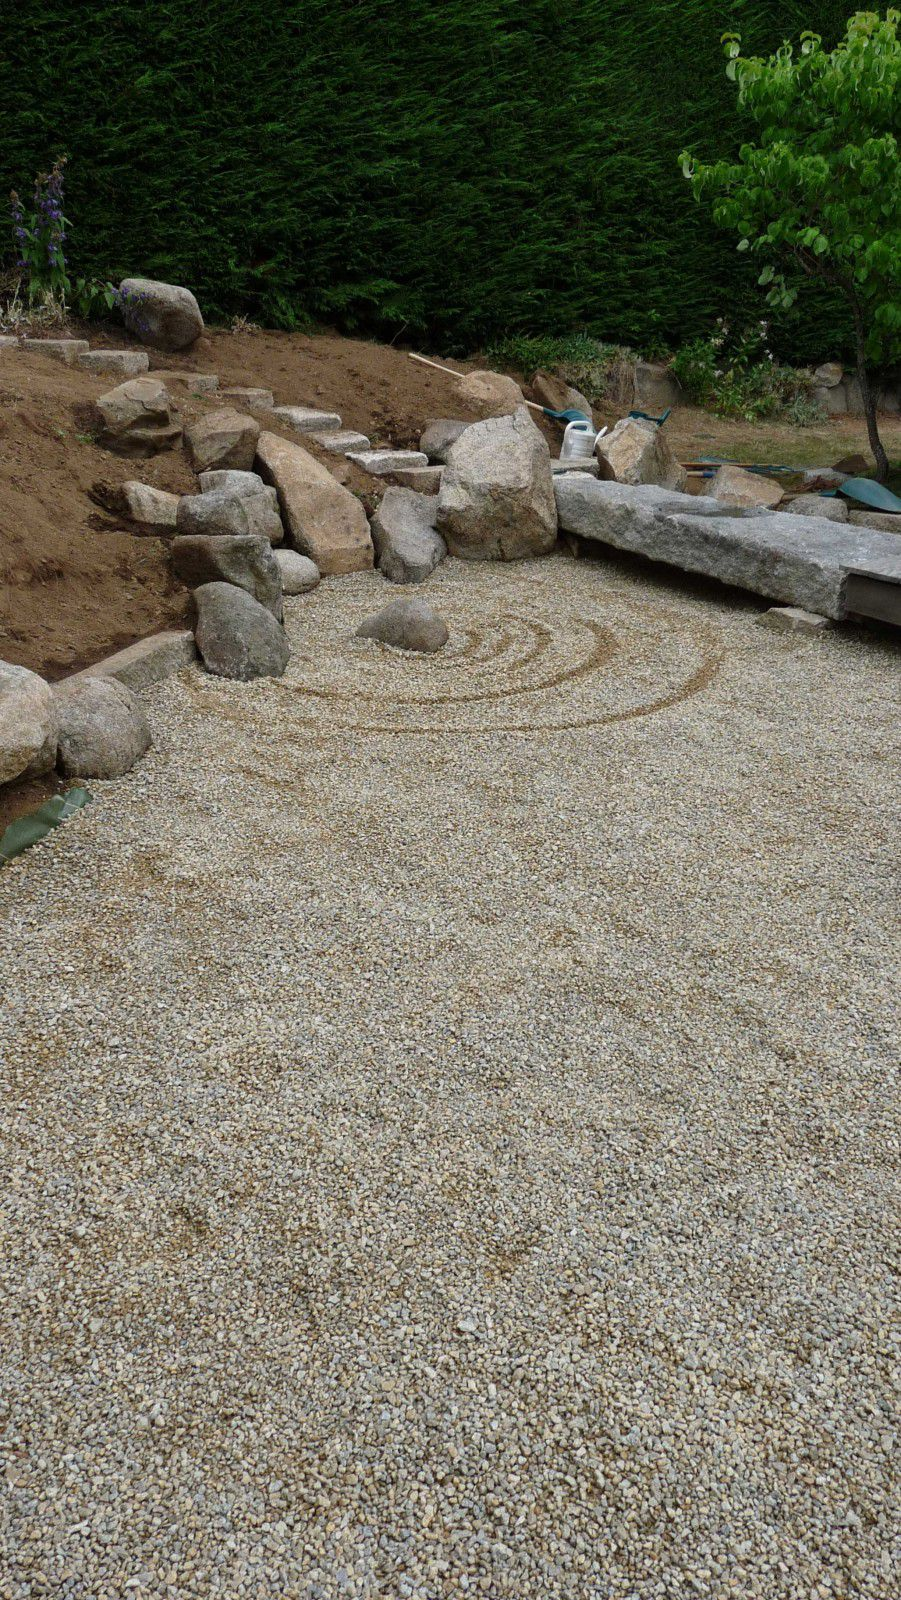 Jardin sec cr ation de jardins d 39 inspiration japonaise for Installer gravier jardin